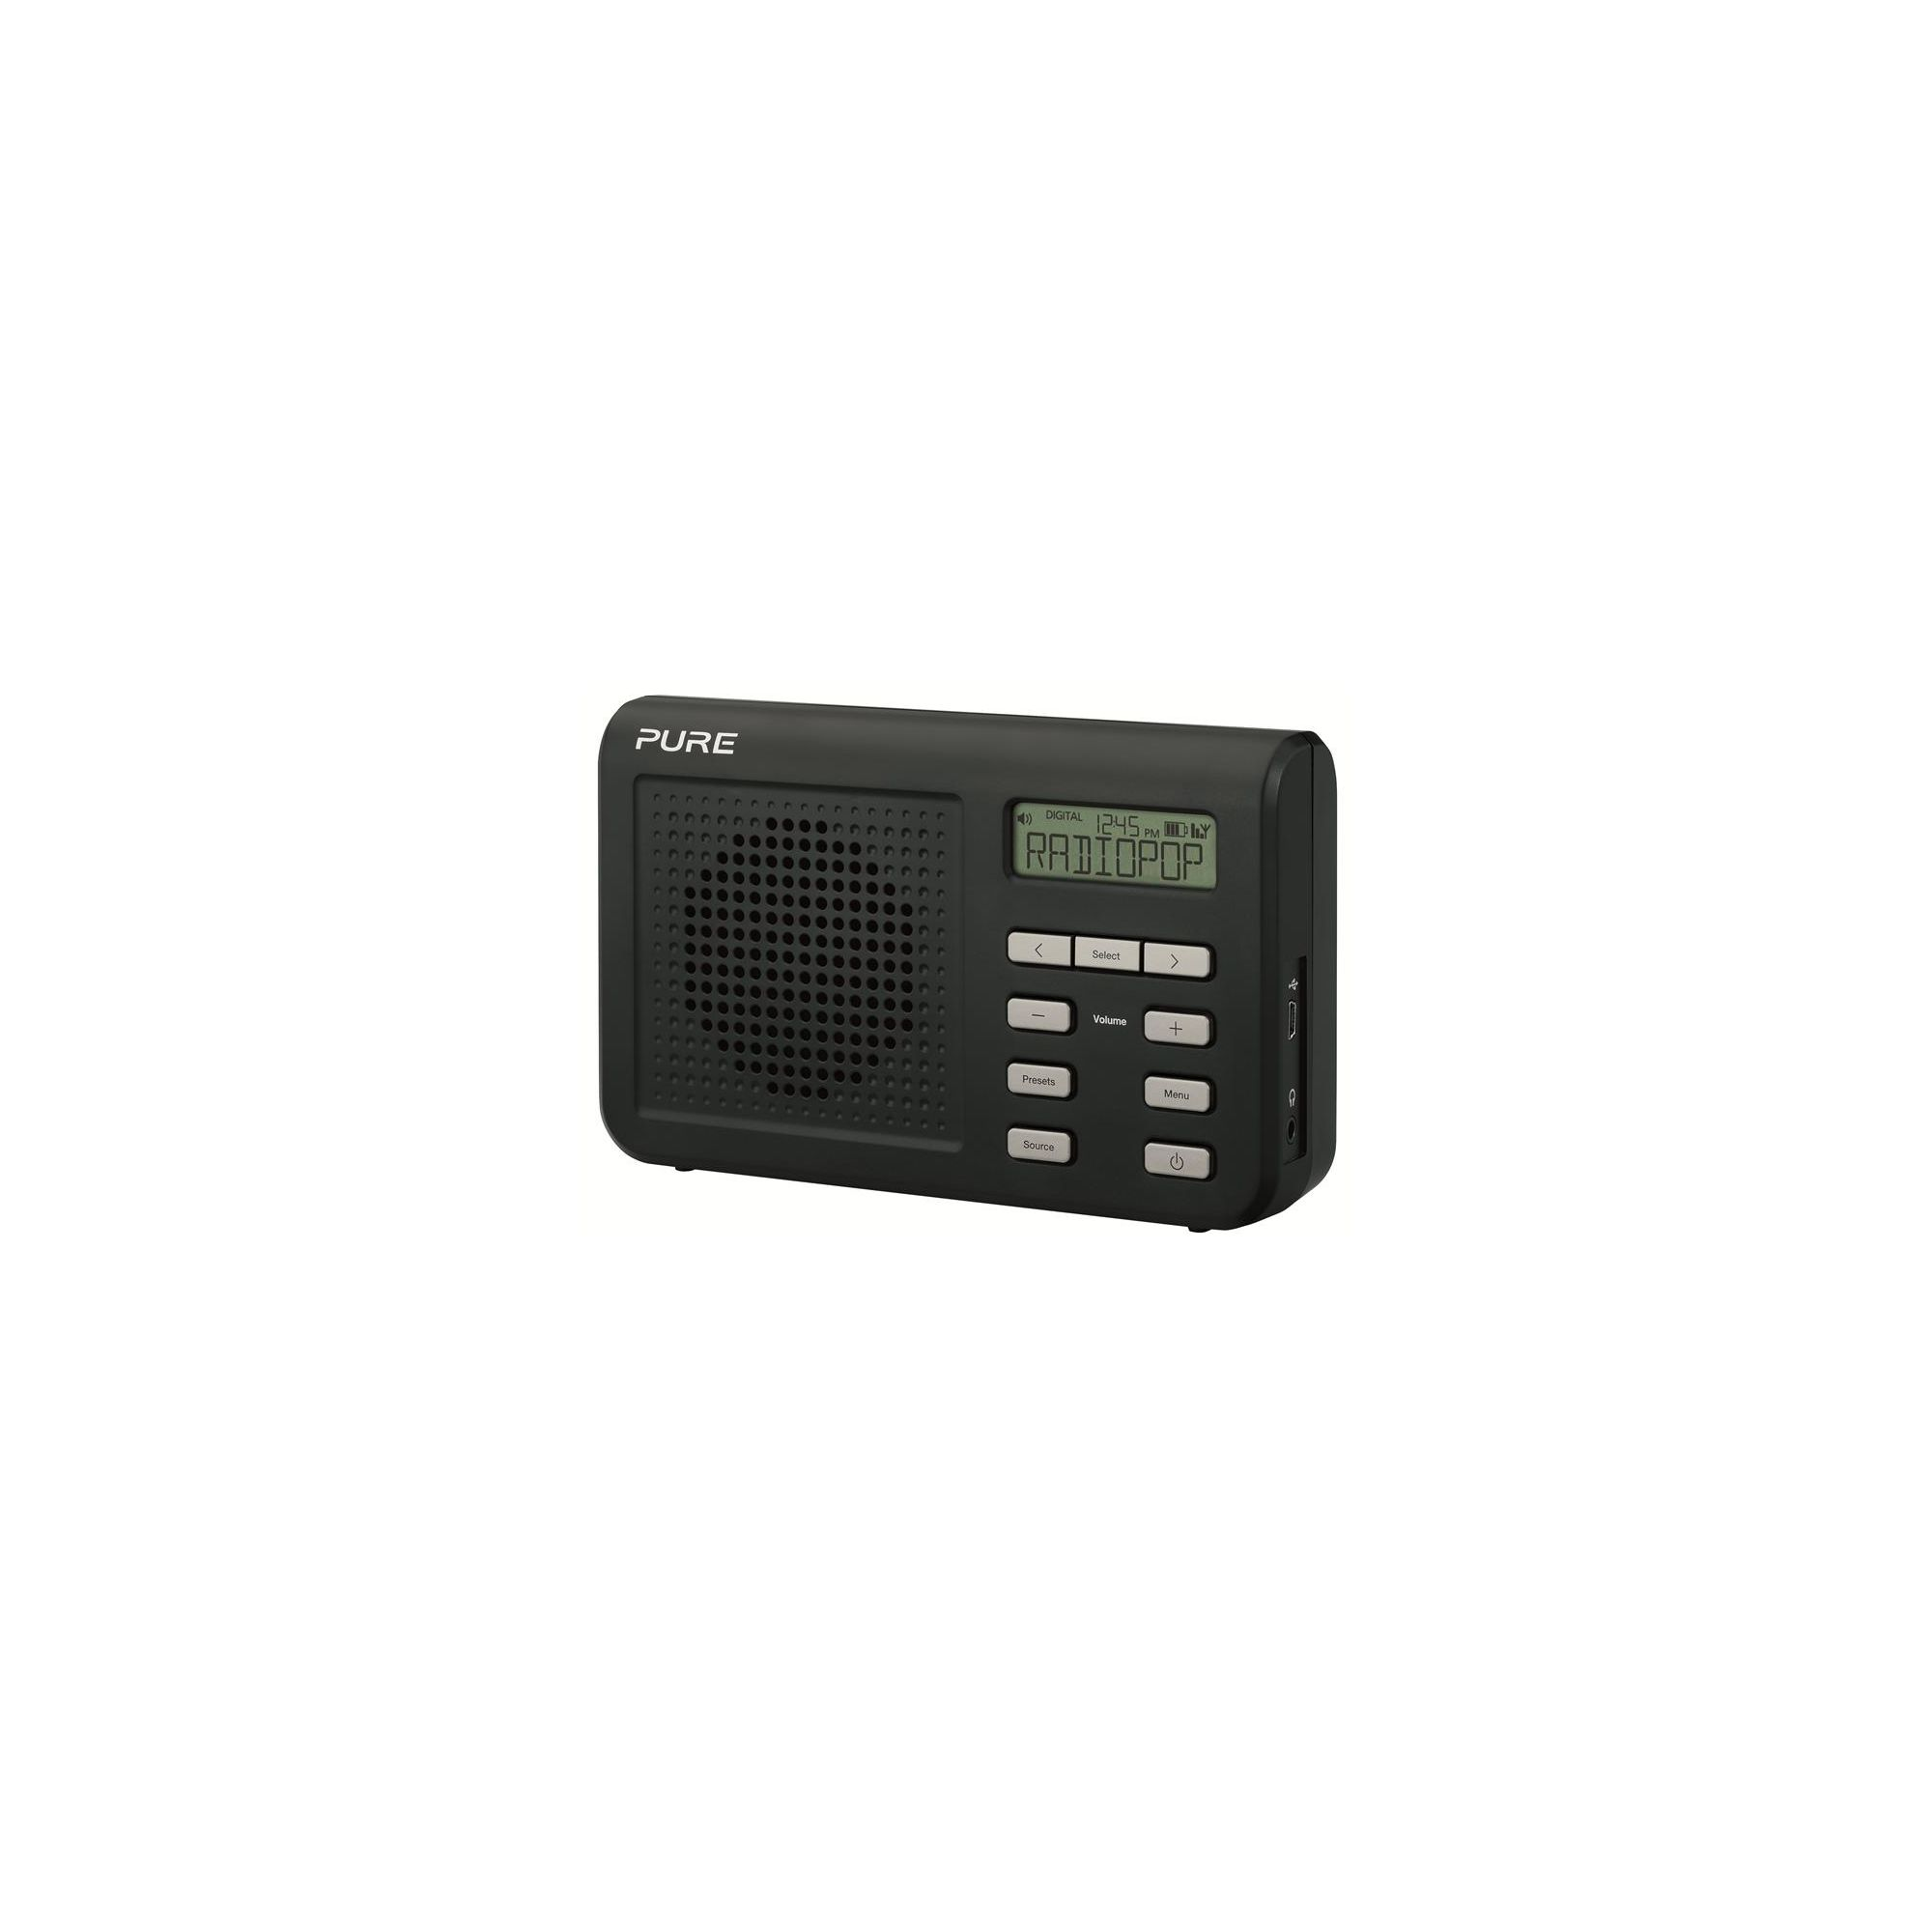 pure one mi dab fm portable radio best deals on dab radio. Black Bedroom Furniture Sets. Home Design Ideas